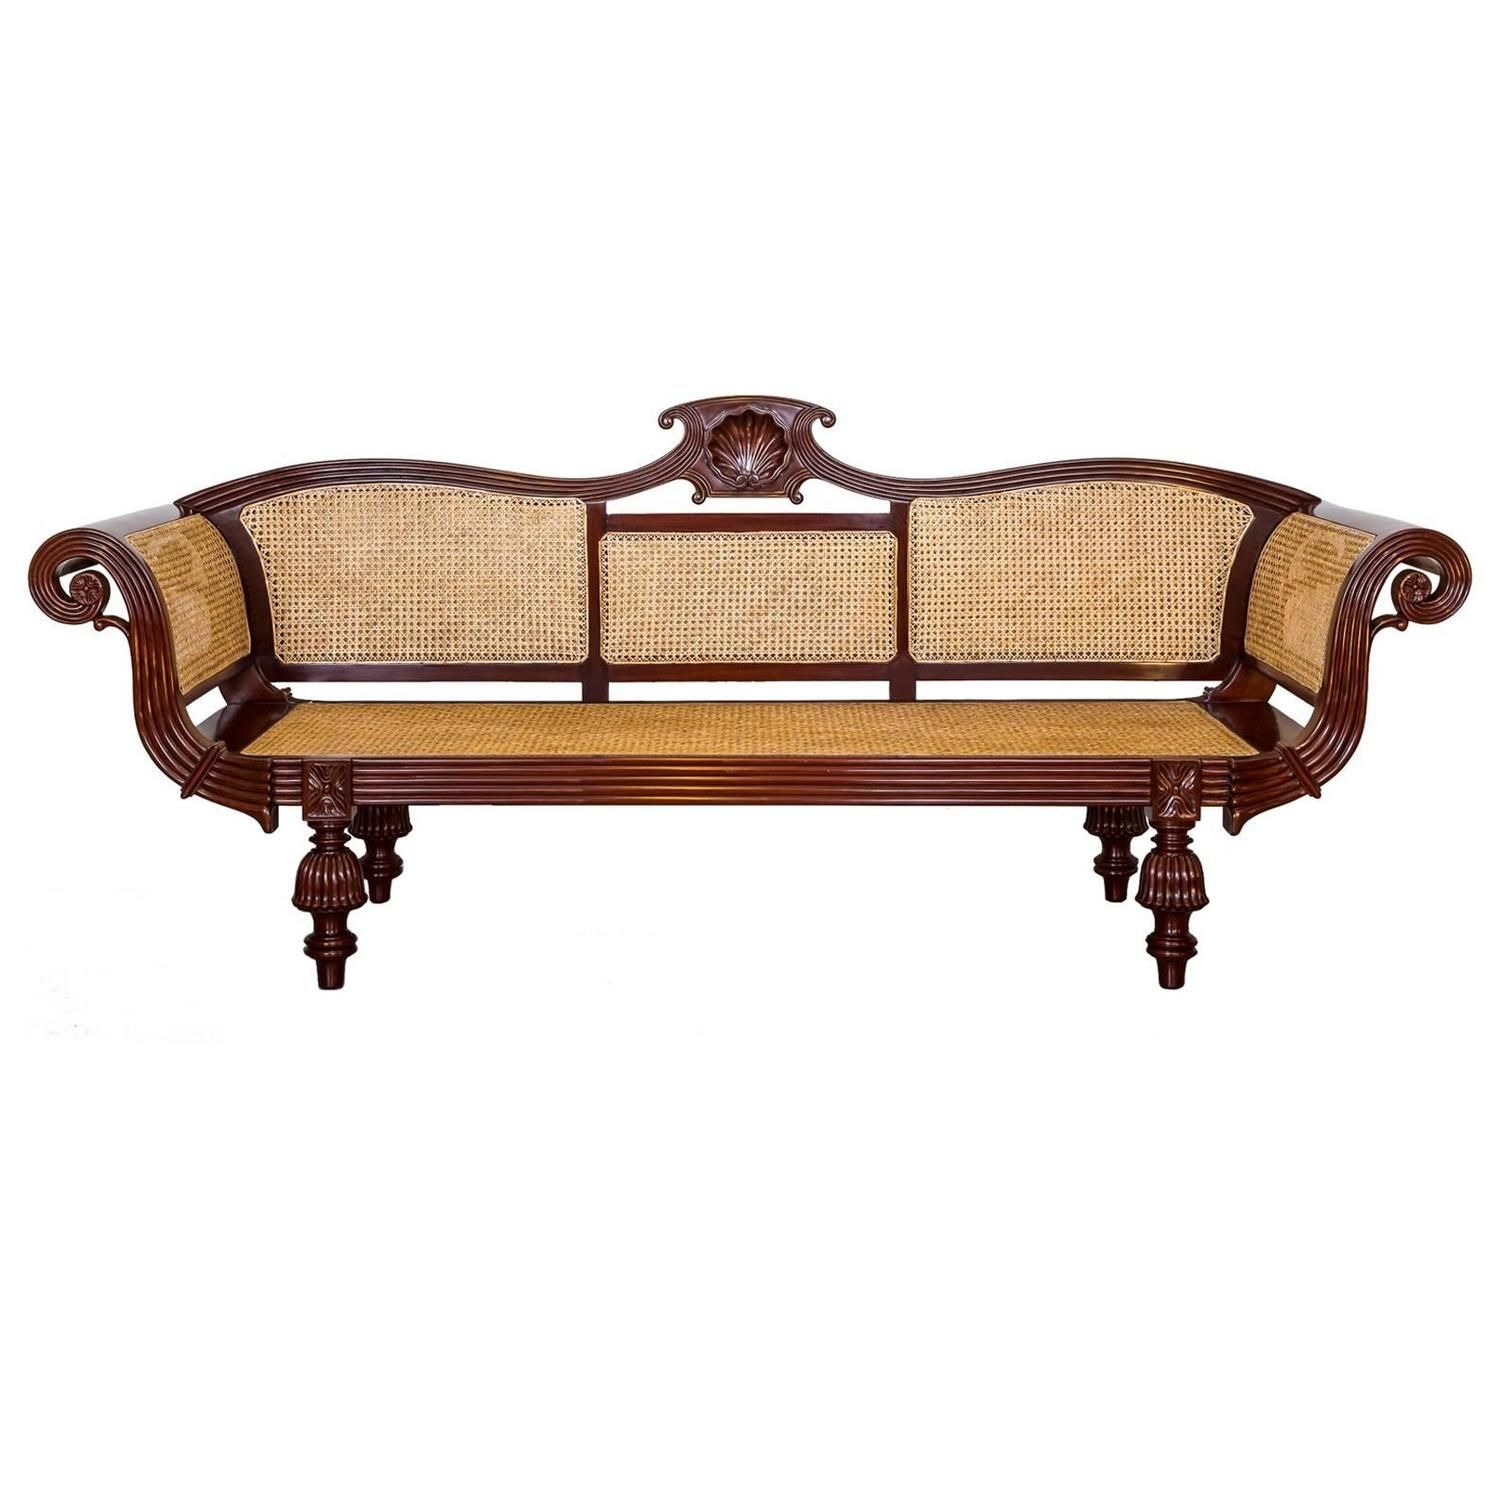 Big Sofa Colonial Anglo Indian Or British Colonial Mahogany Sofa Pinterest